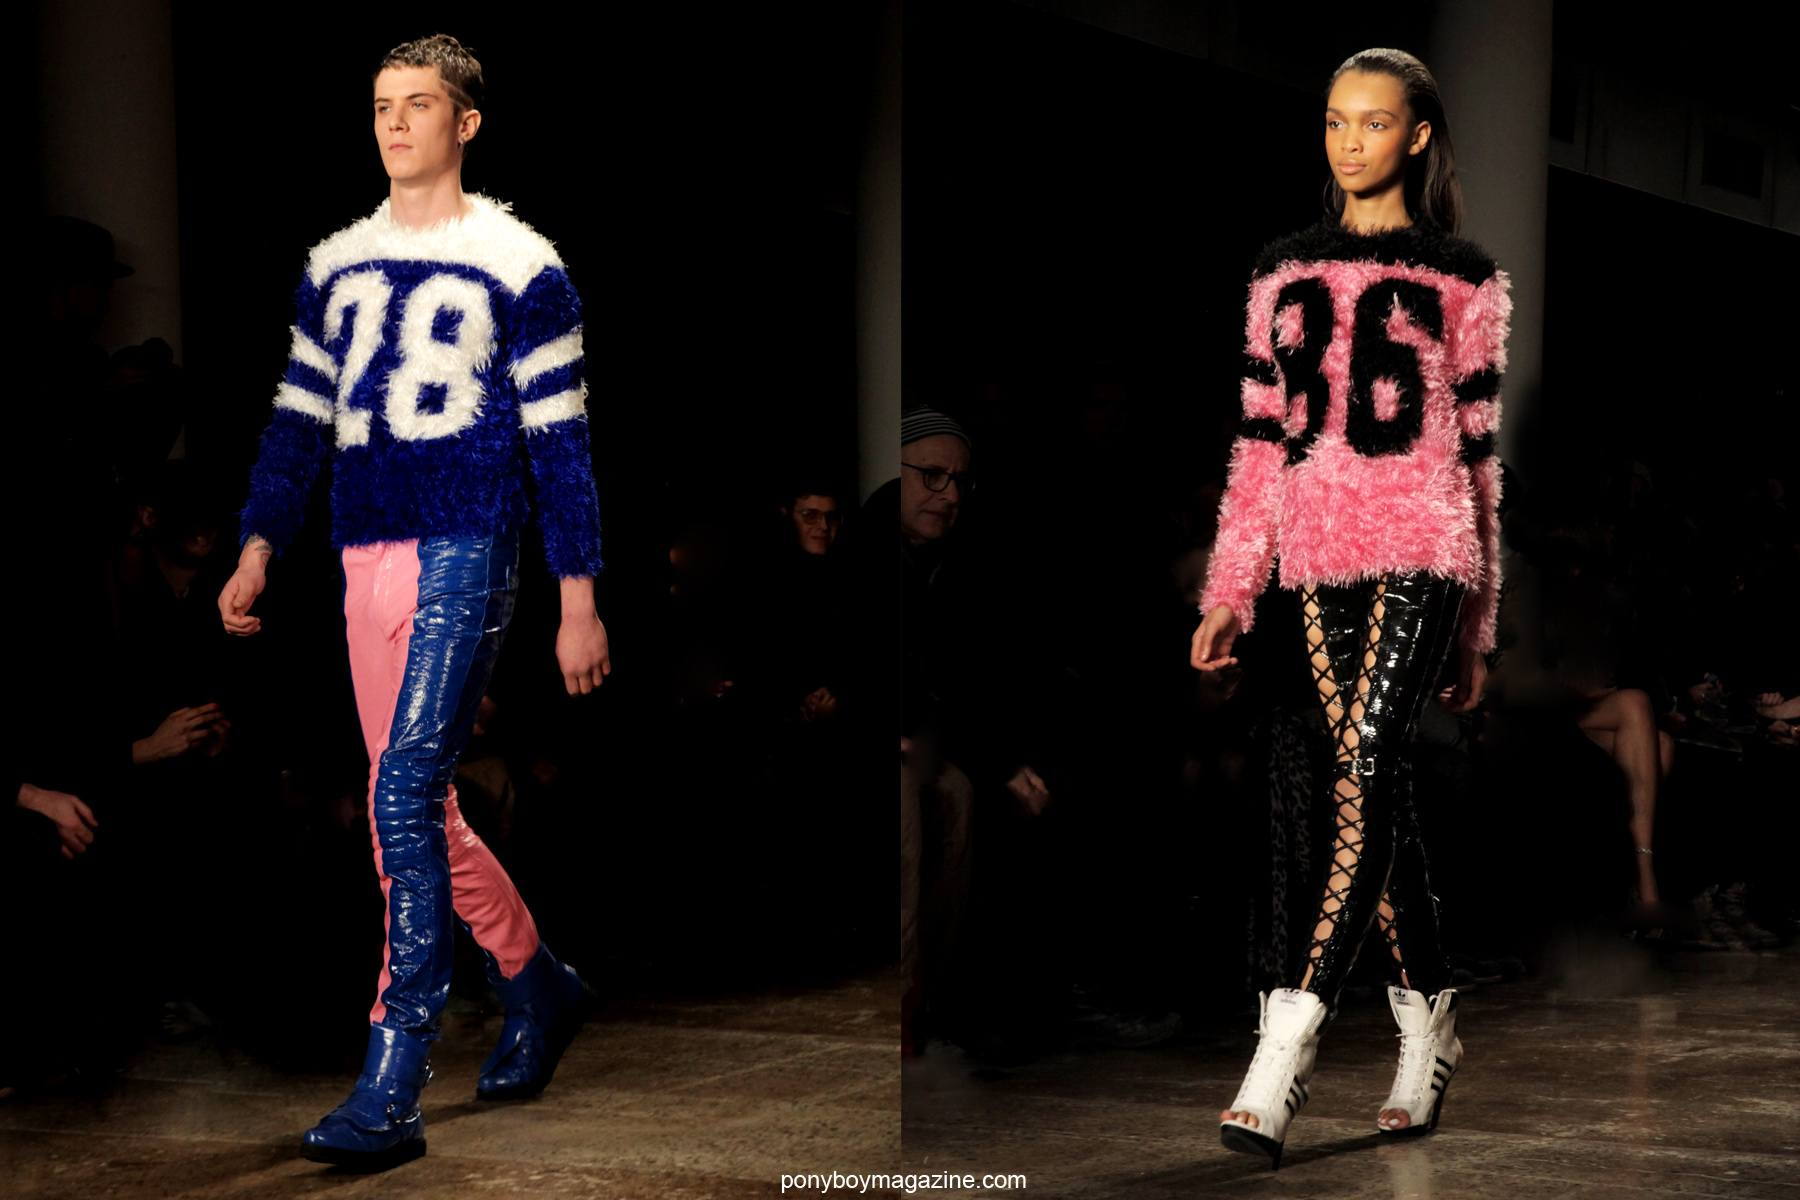 Models in fuzzy jerseys photographed at the Jeremy Scott A/W 2014 runway show by Alexander Thompson in New York City for Ponyboy Magazine.